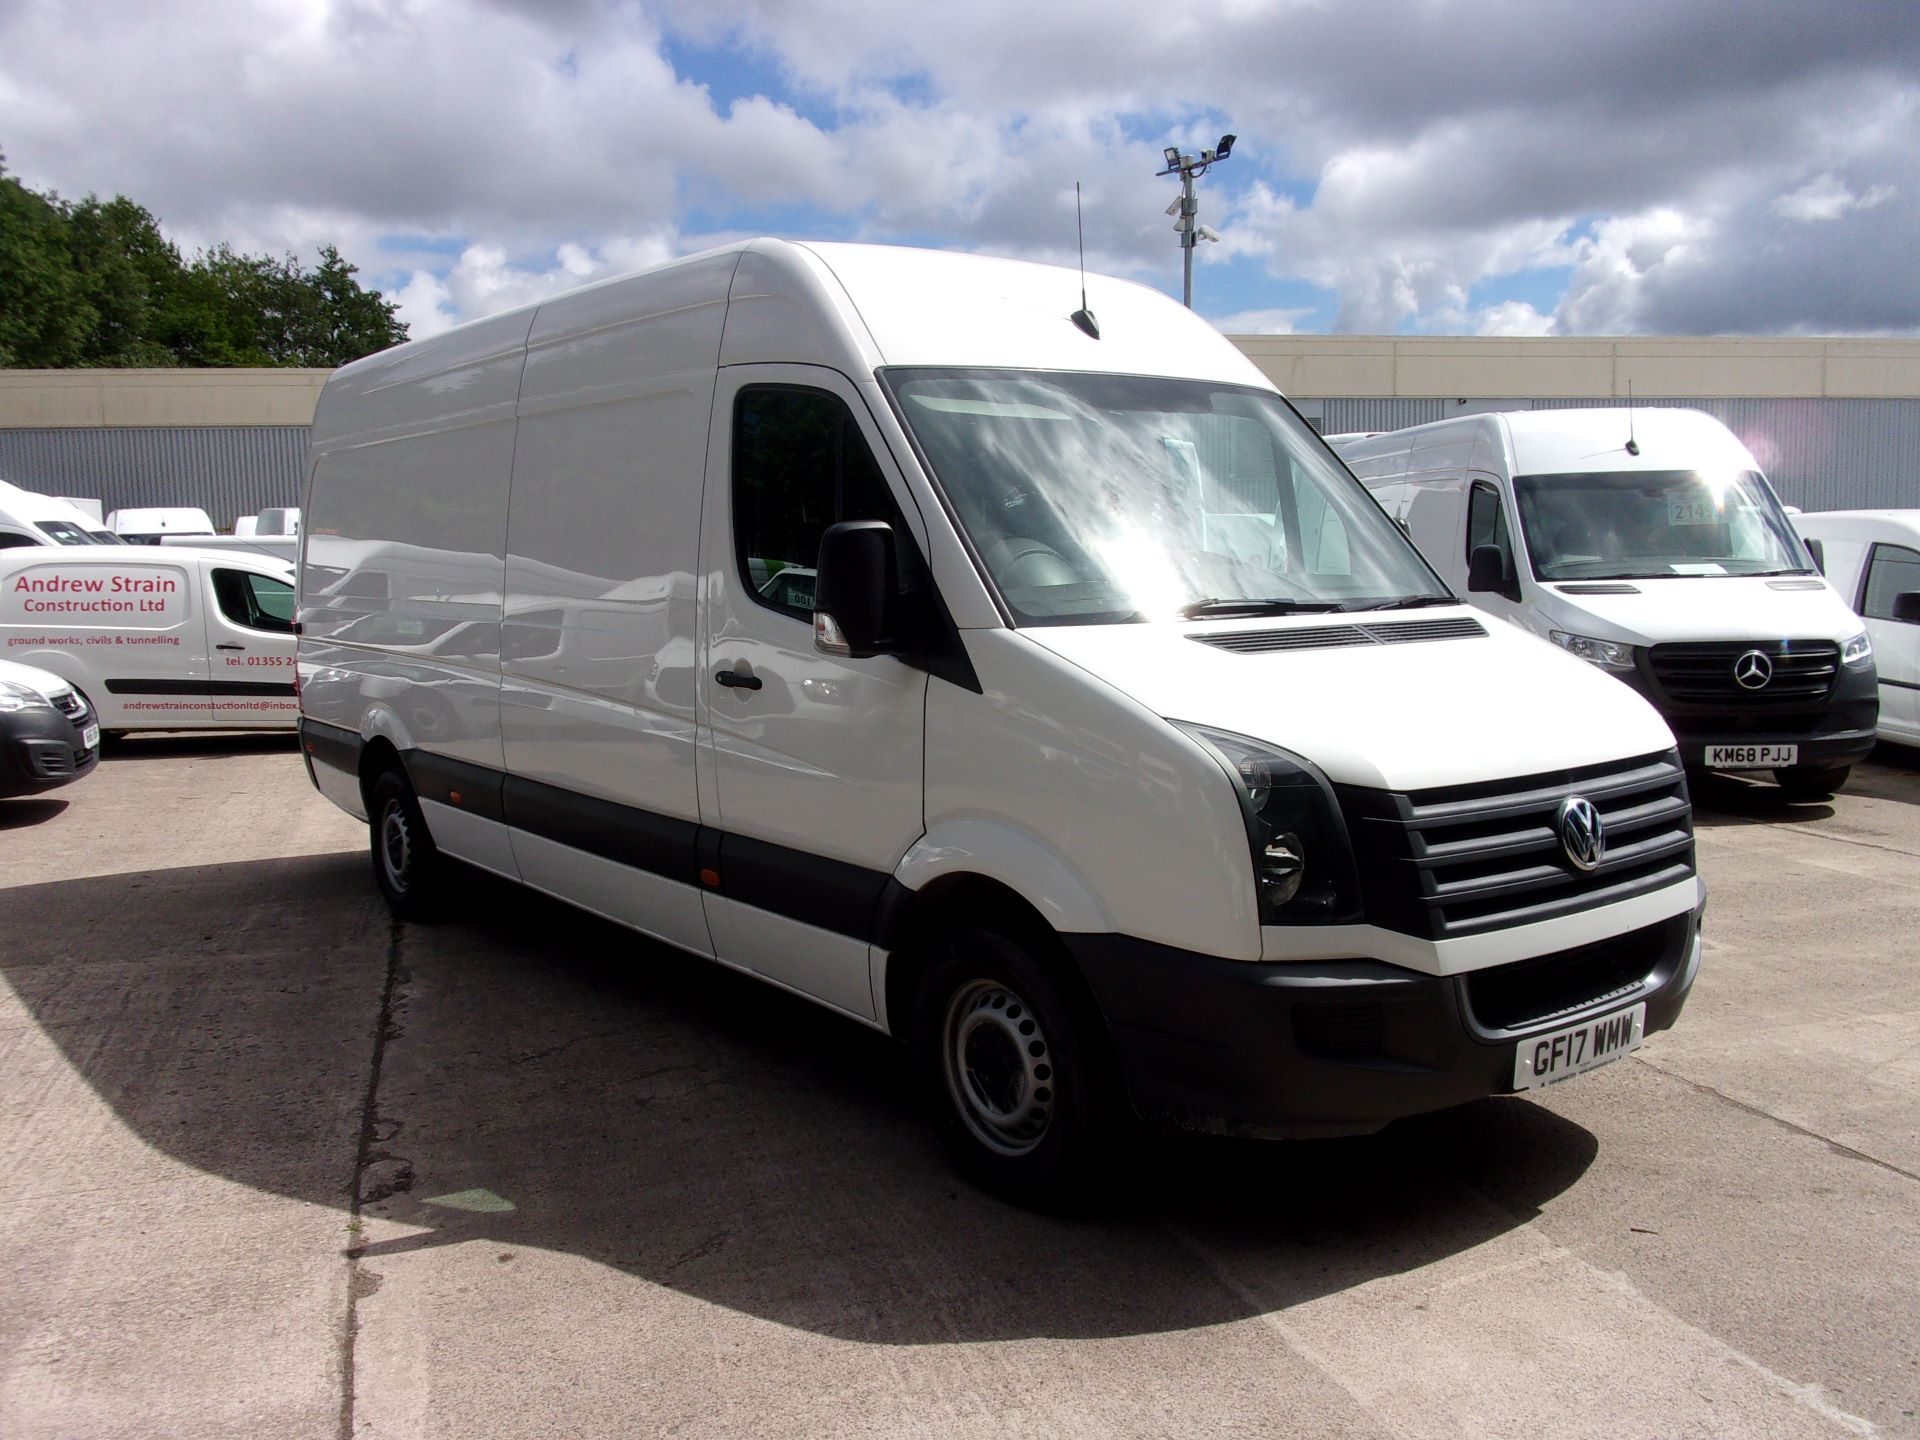 2017 Volkswagen Crafter CR35 LWB DIESEL 2.0 TDI 140PS BMT HIGH ROOF EURO 6 (GF17WMW)